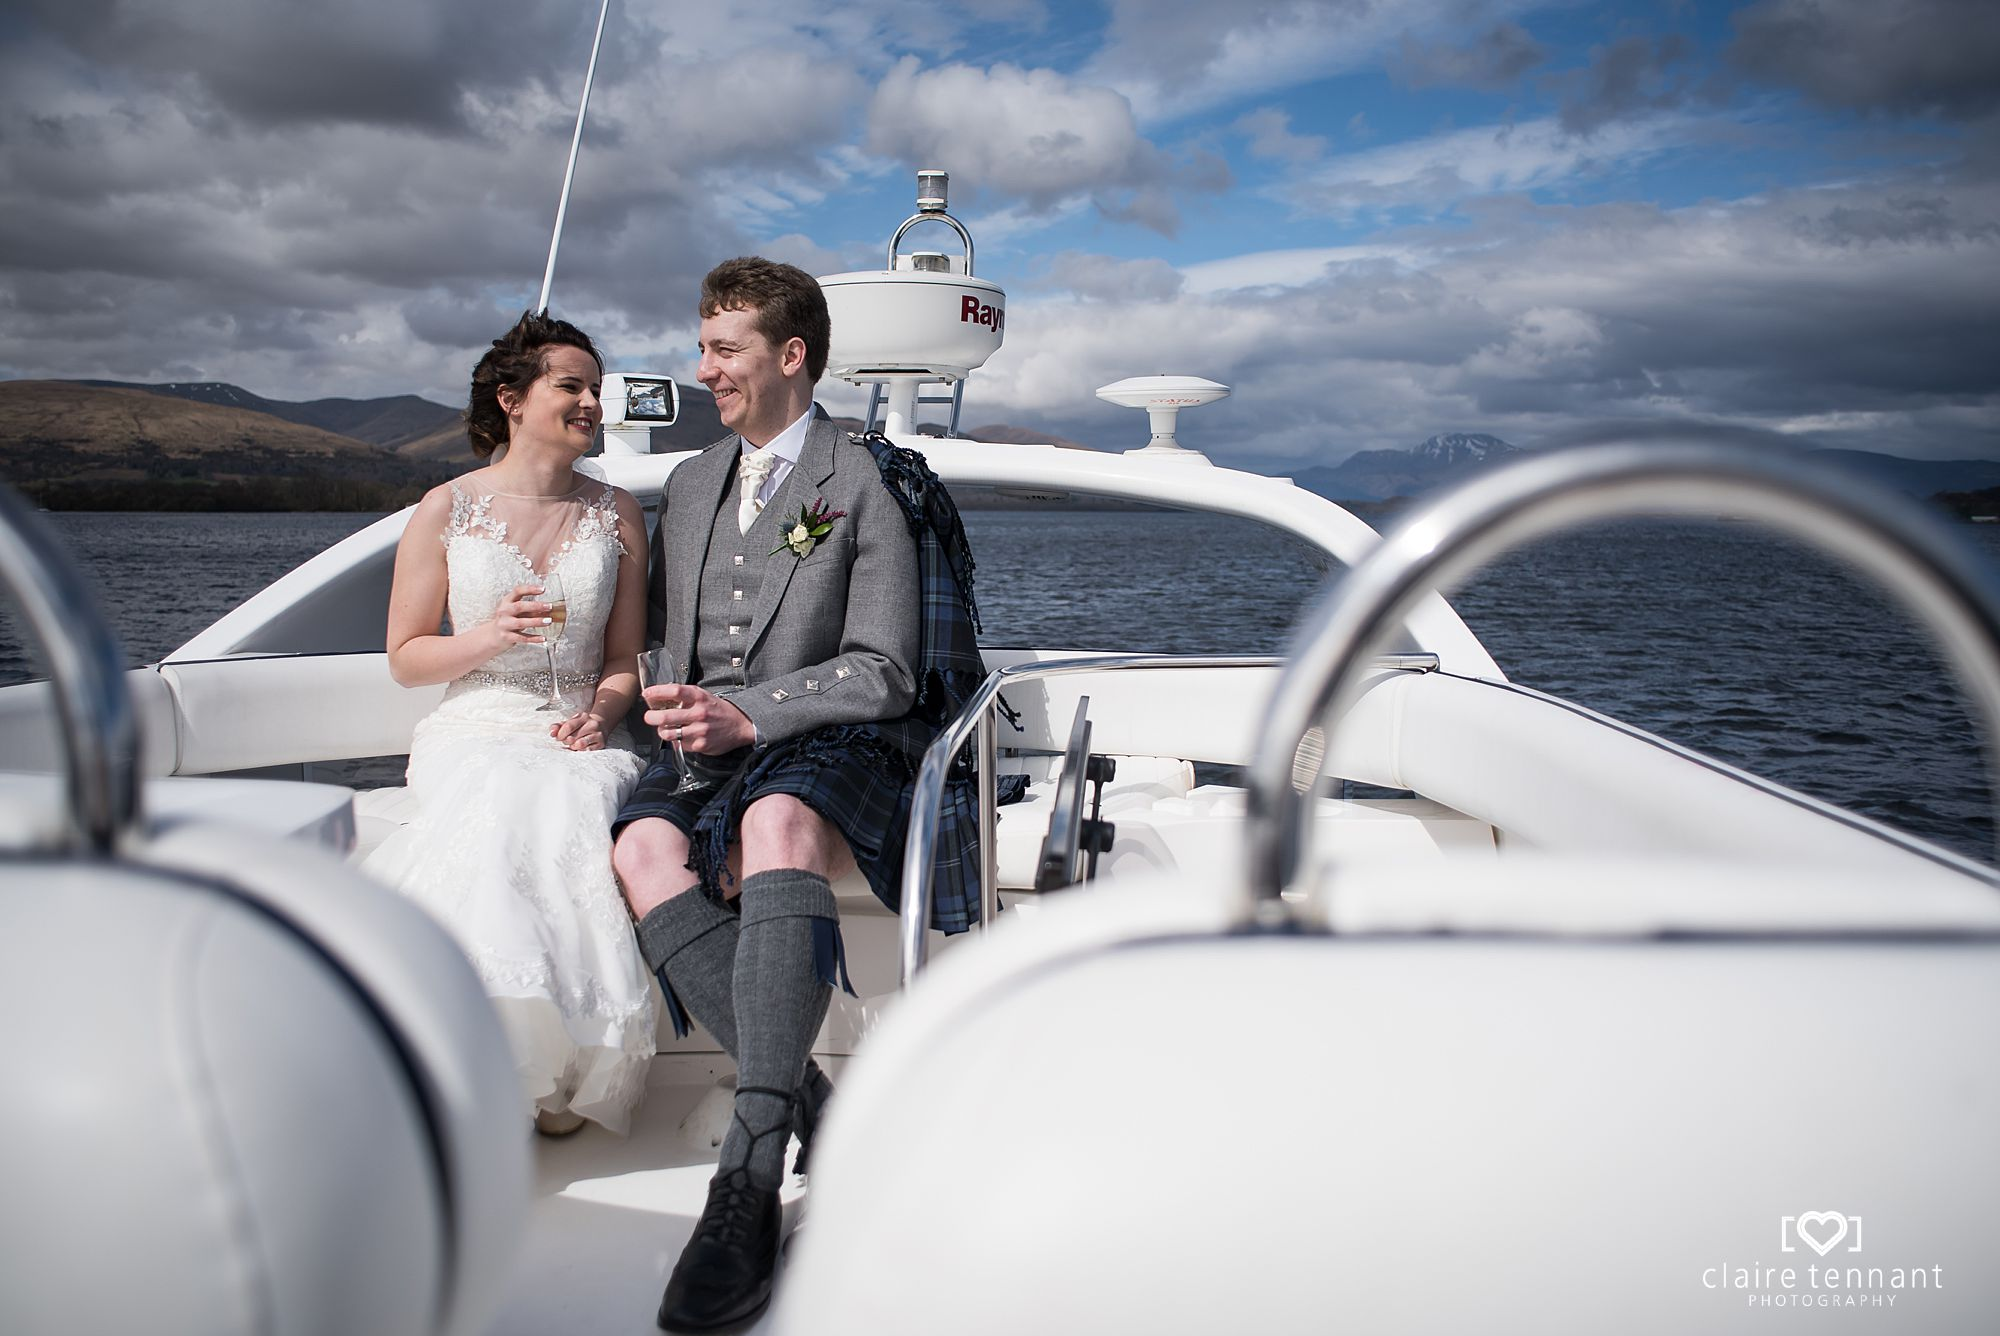 Springtime Outdoor Wedding At The Cruin, Loch Lomond